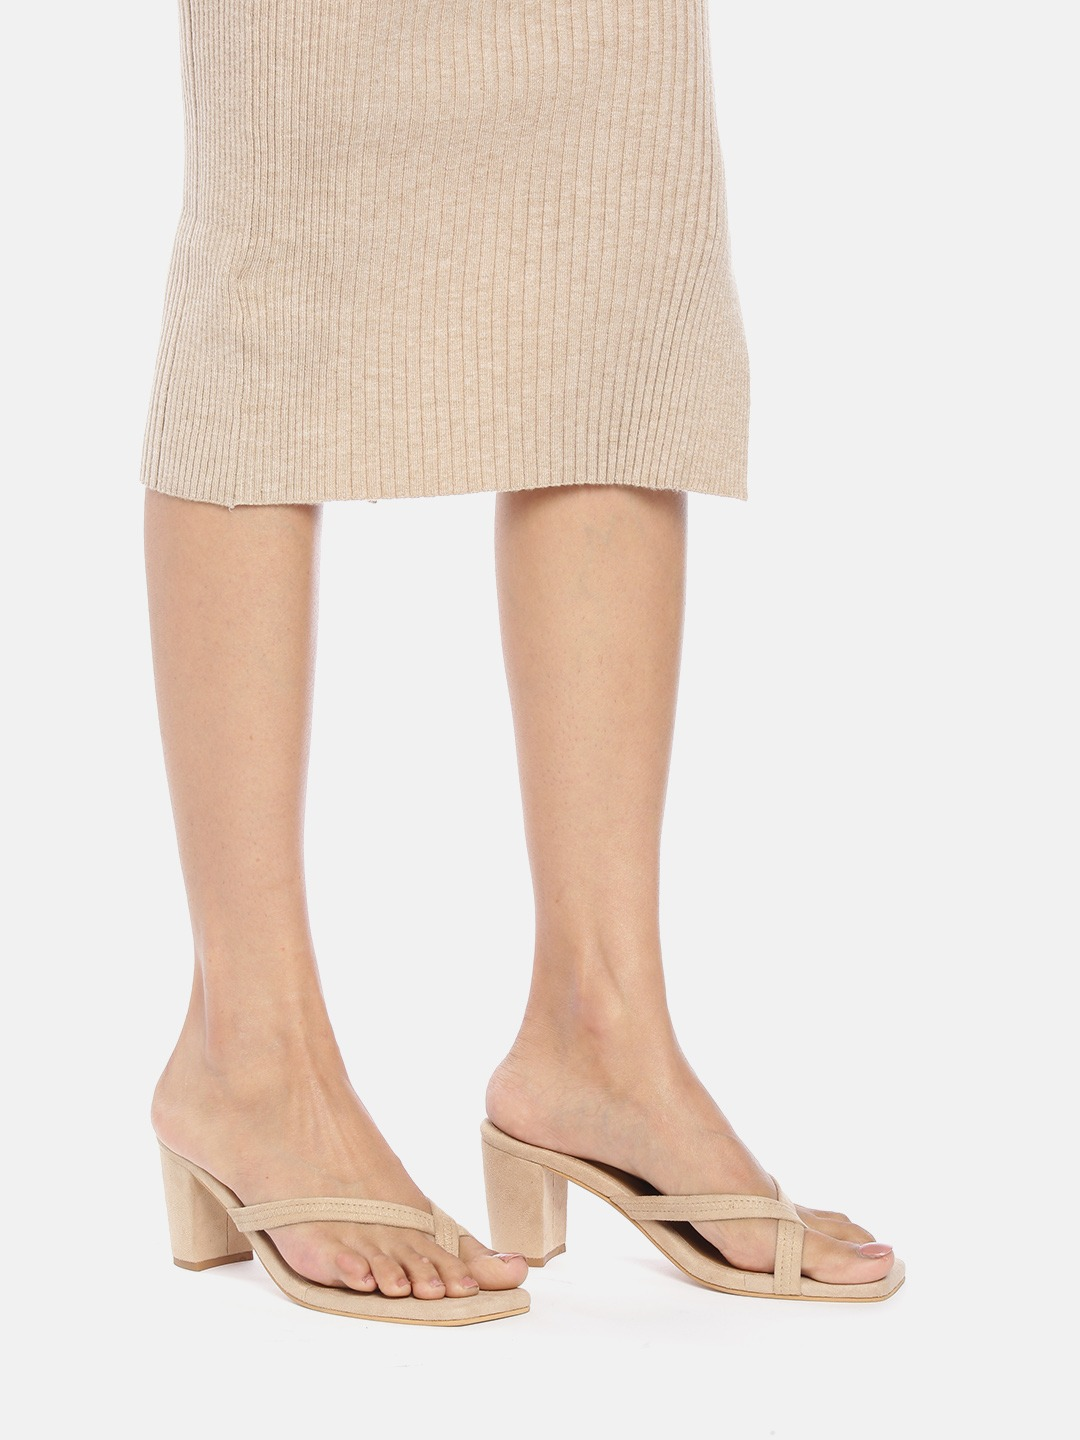 Heels and Wedges-Follow The Steps Beige Heels8